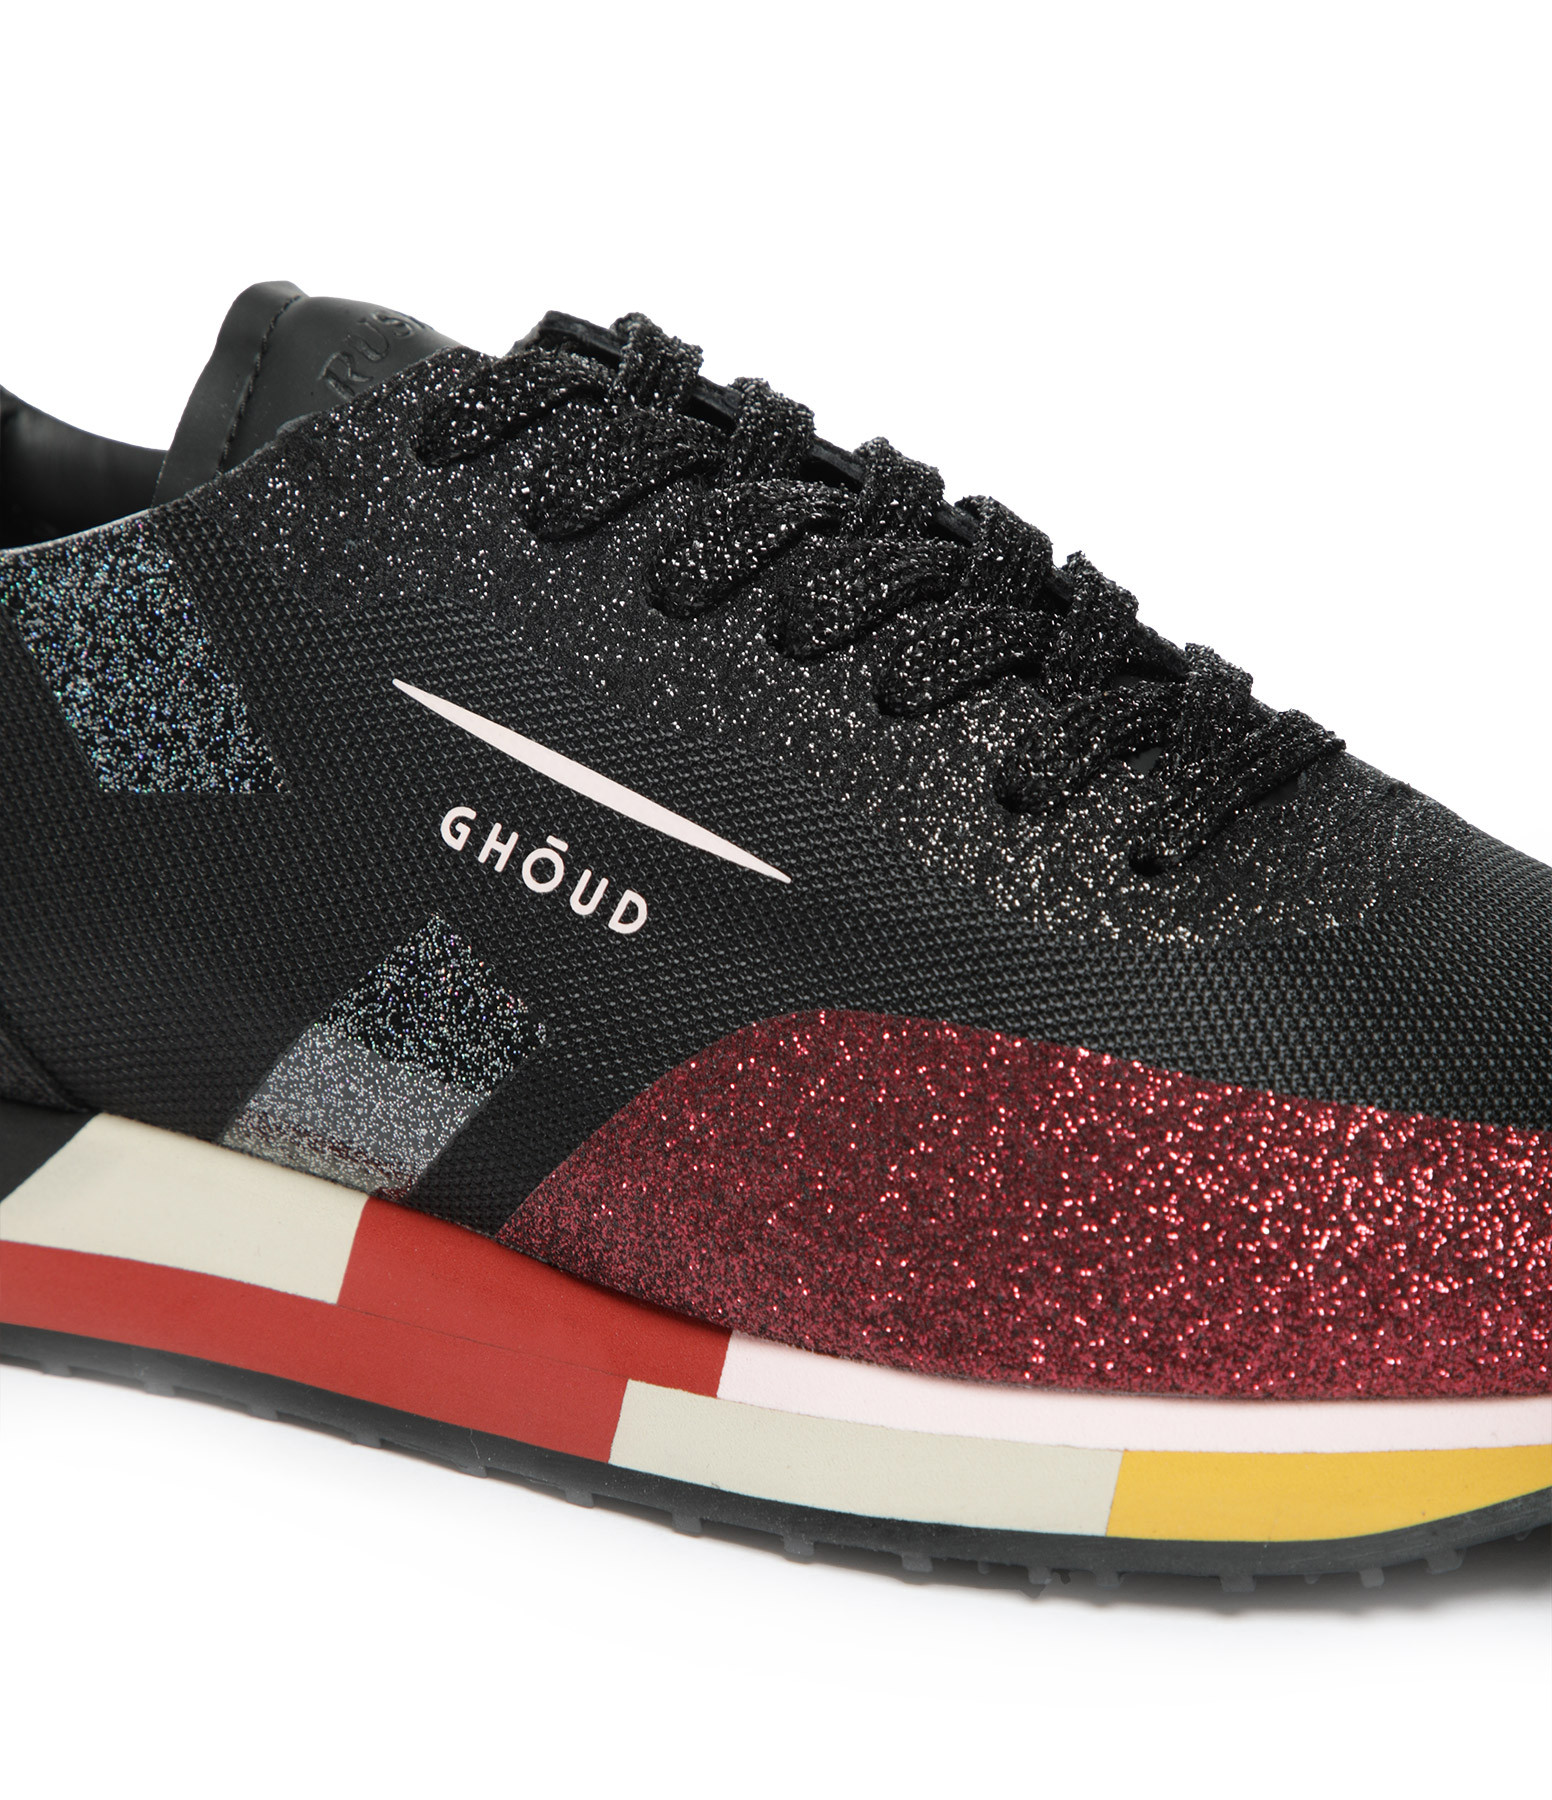 GHOUD VENICE - Baskets Running Star Glitter Noir Bordeaux